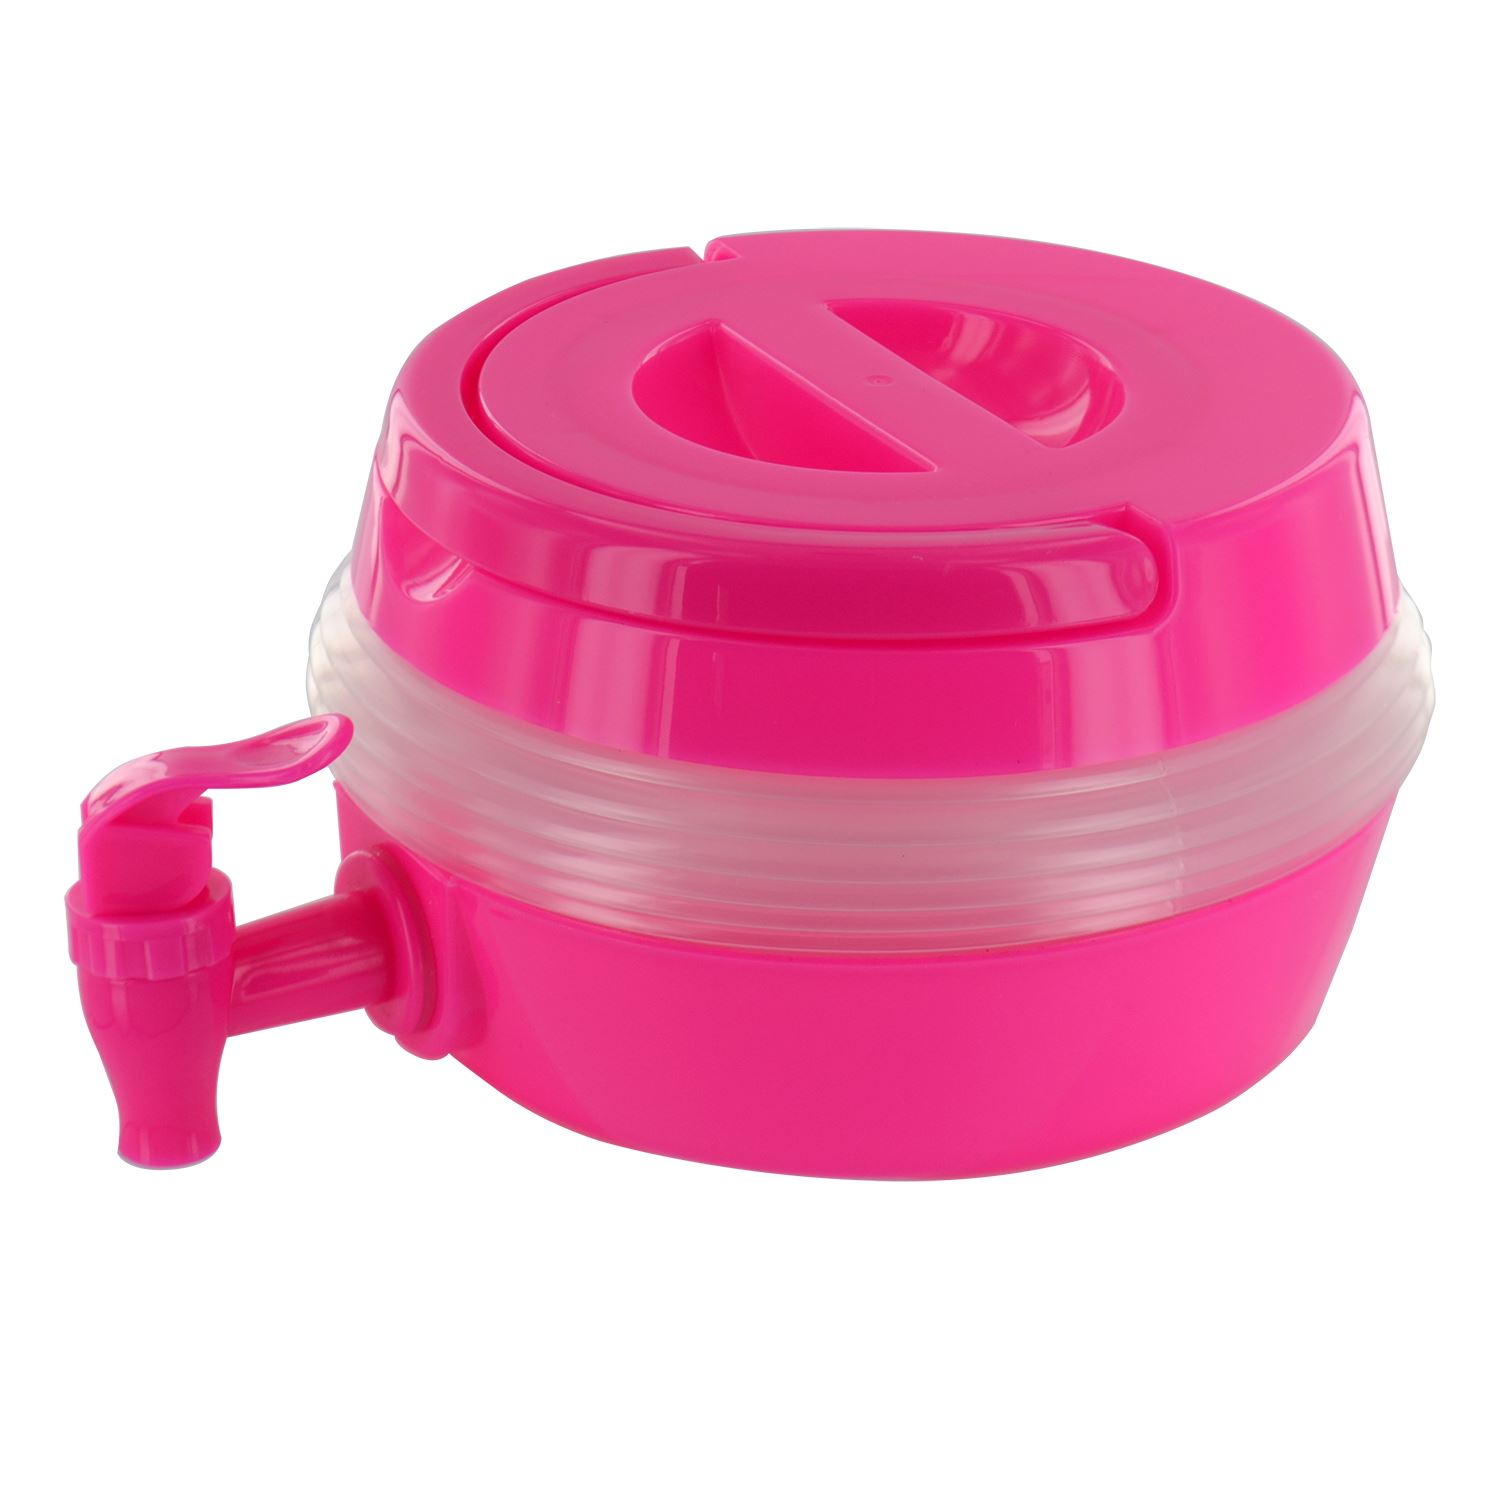 Portable drink container